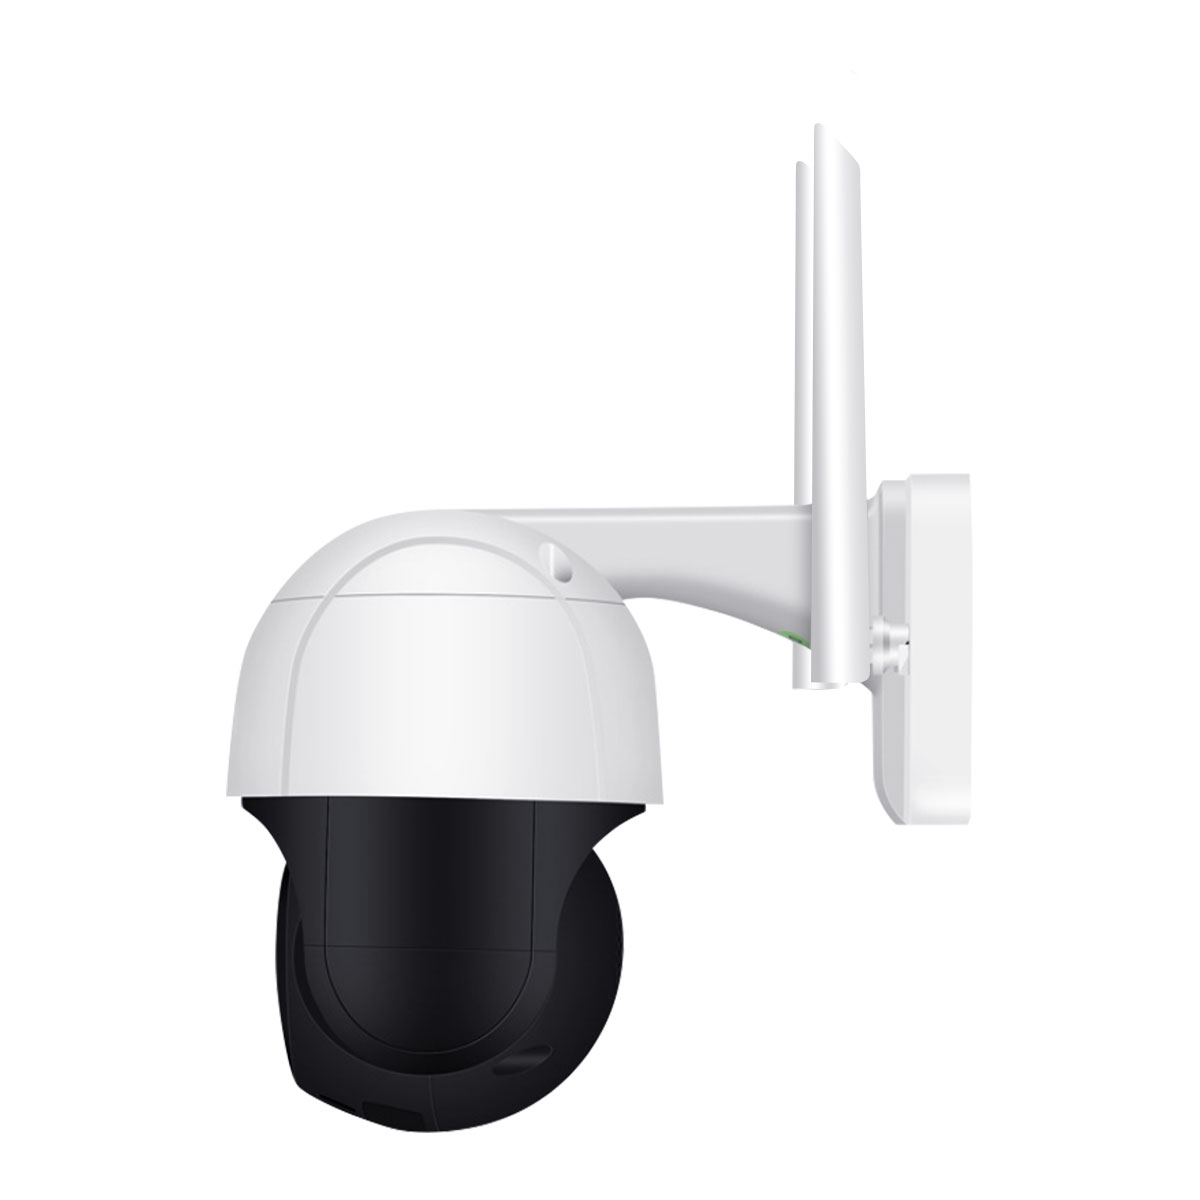 ESCAM QF518 5MP Pan/Tilt AI Humanoid Detection Auto Tracking Cloud Storage WiFi IP Camera with Two Way Audio Night Vision